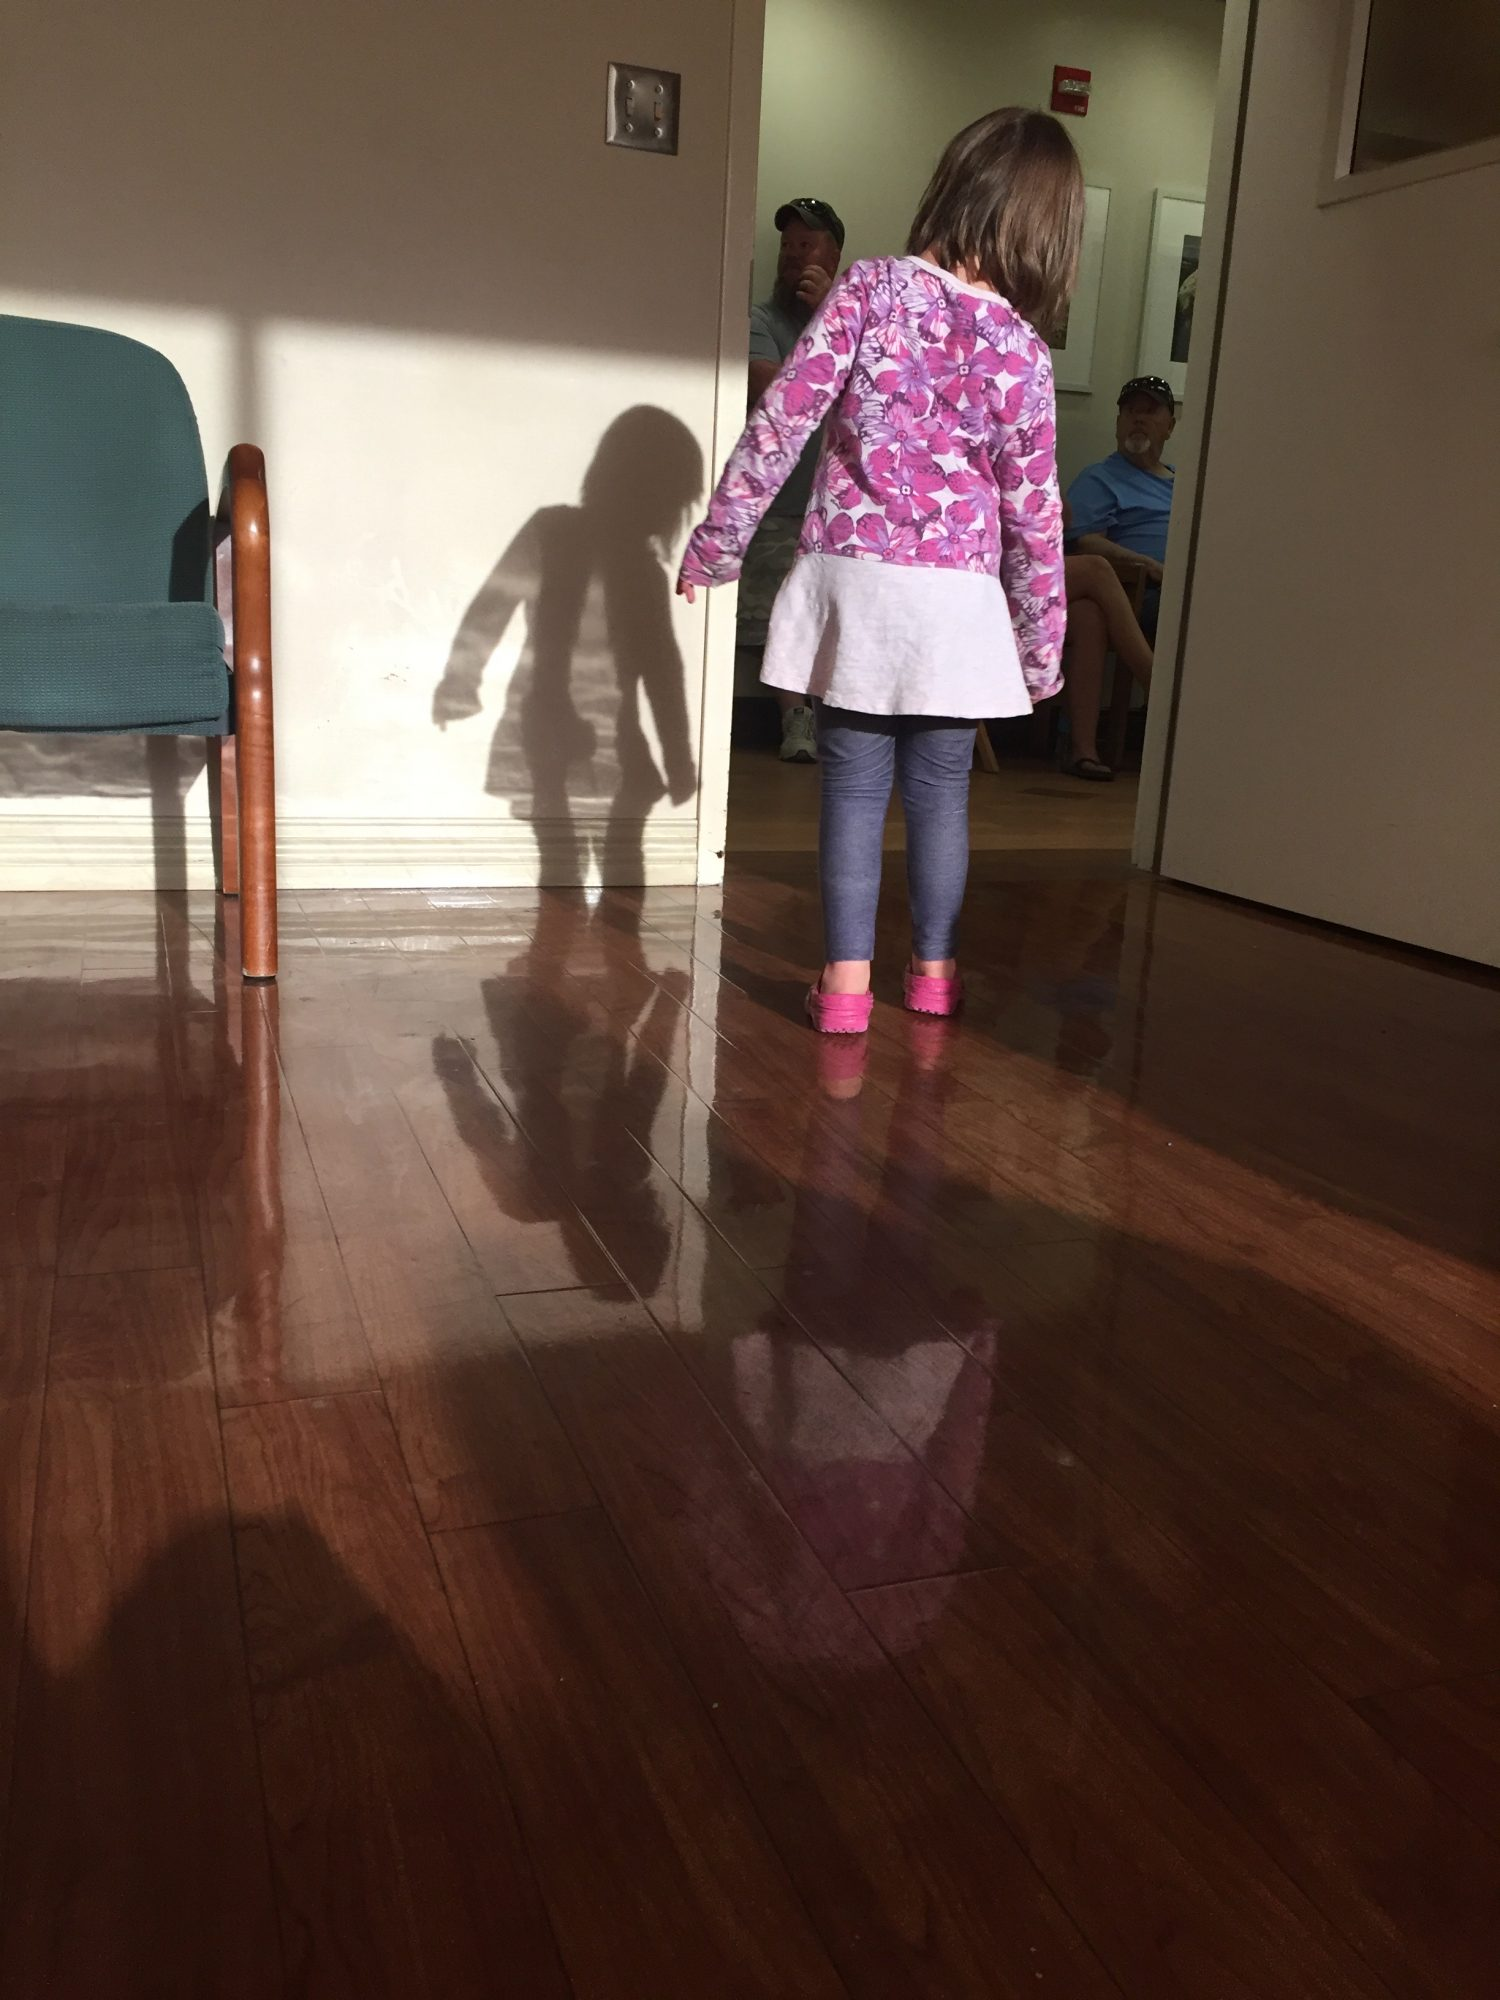 child looking through door and her shadow is on the wall